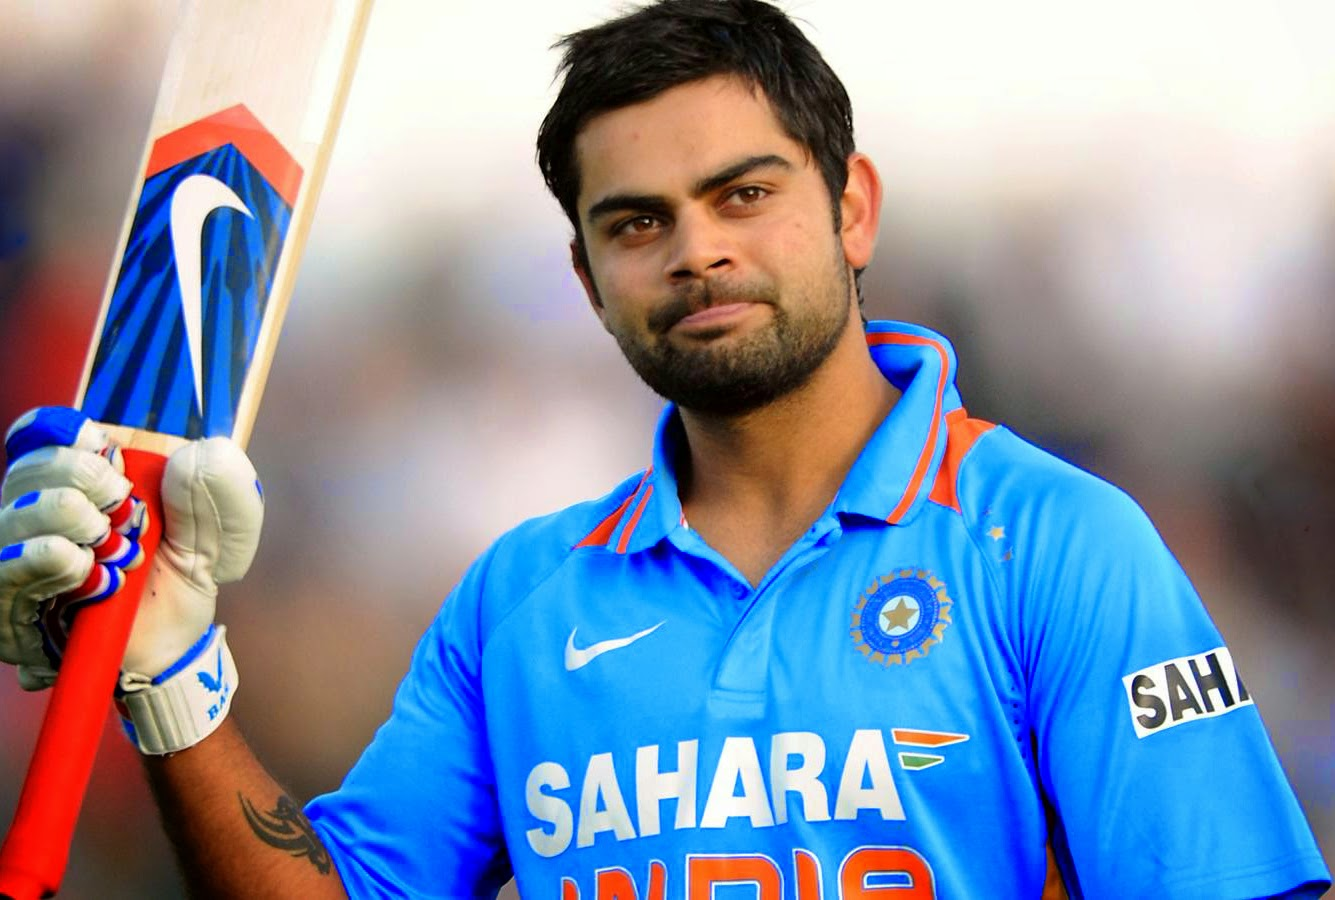 virat kohli new images 2014 15 all world cricket player hd wallpapers